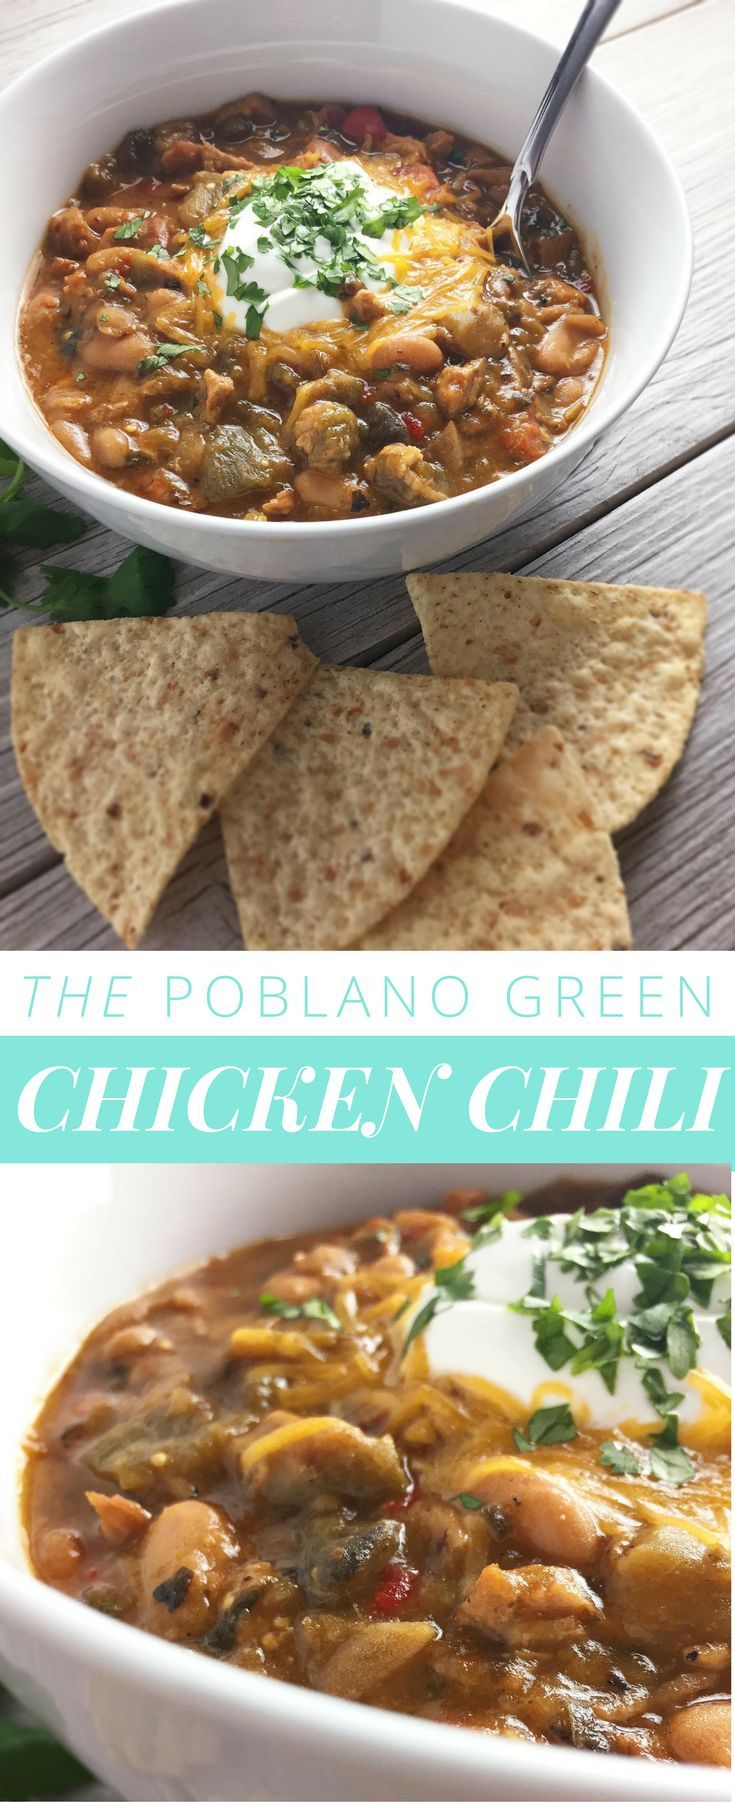 THE poblano green chicken chili — This comforting chili is packed with layer after layer of flavor. Smoky roasted peppers and garlic mingle with rich tomatillos, silky beans and tender chicken for a complex but familiar flavor. Poblano peppers, known best for chiles rellenos, lead the way with soft, savory heat.